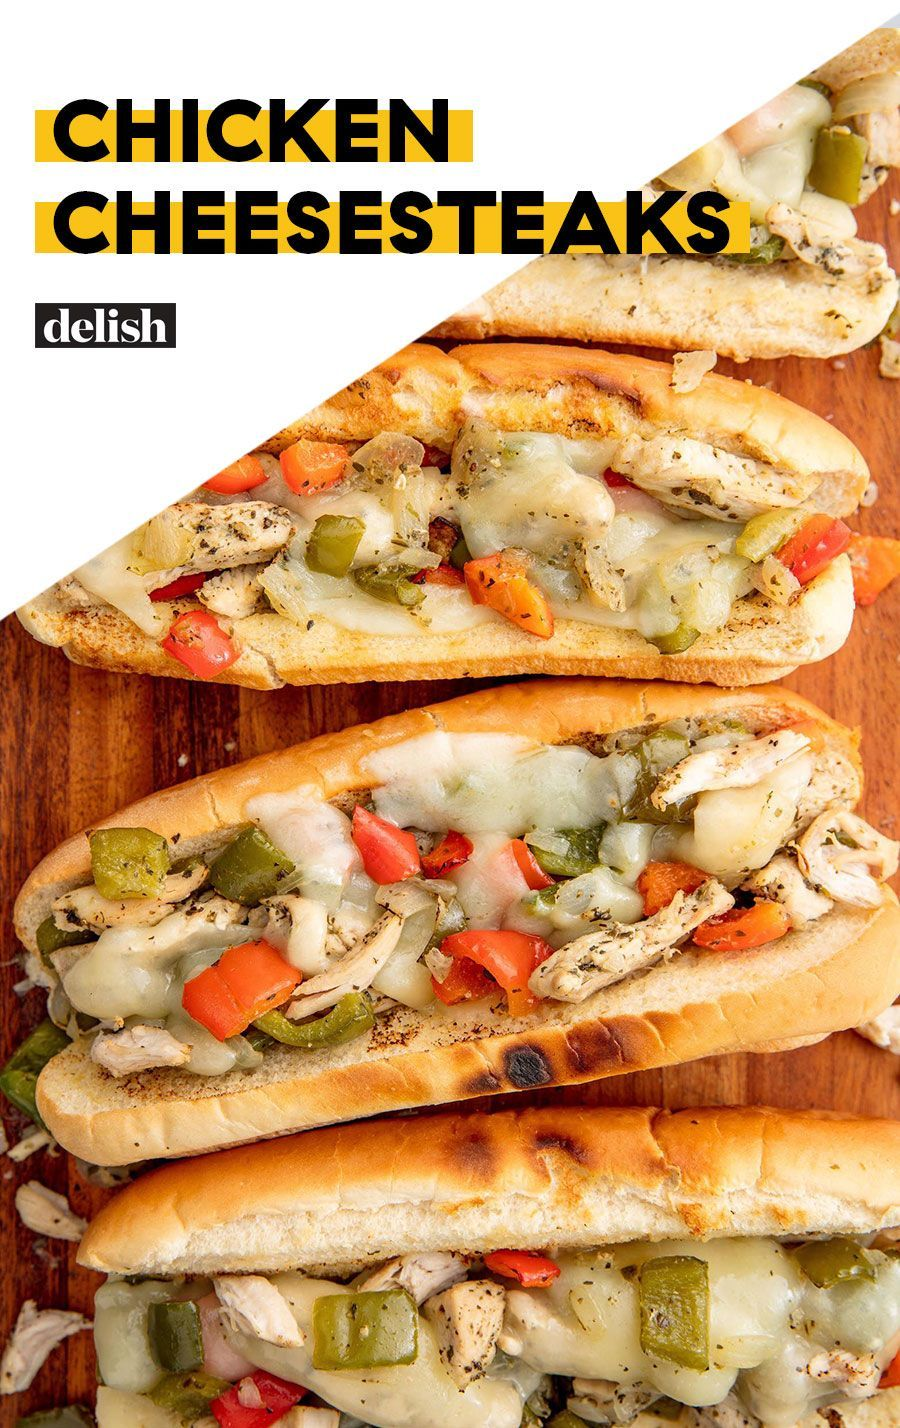 Cheesesteaks For when you need a break from red meat, but are CRAVING a cheesesteak.For when you need a break from red meat, but are CRAVING a cheesesteak.